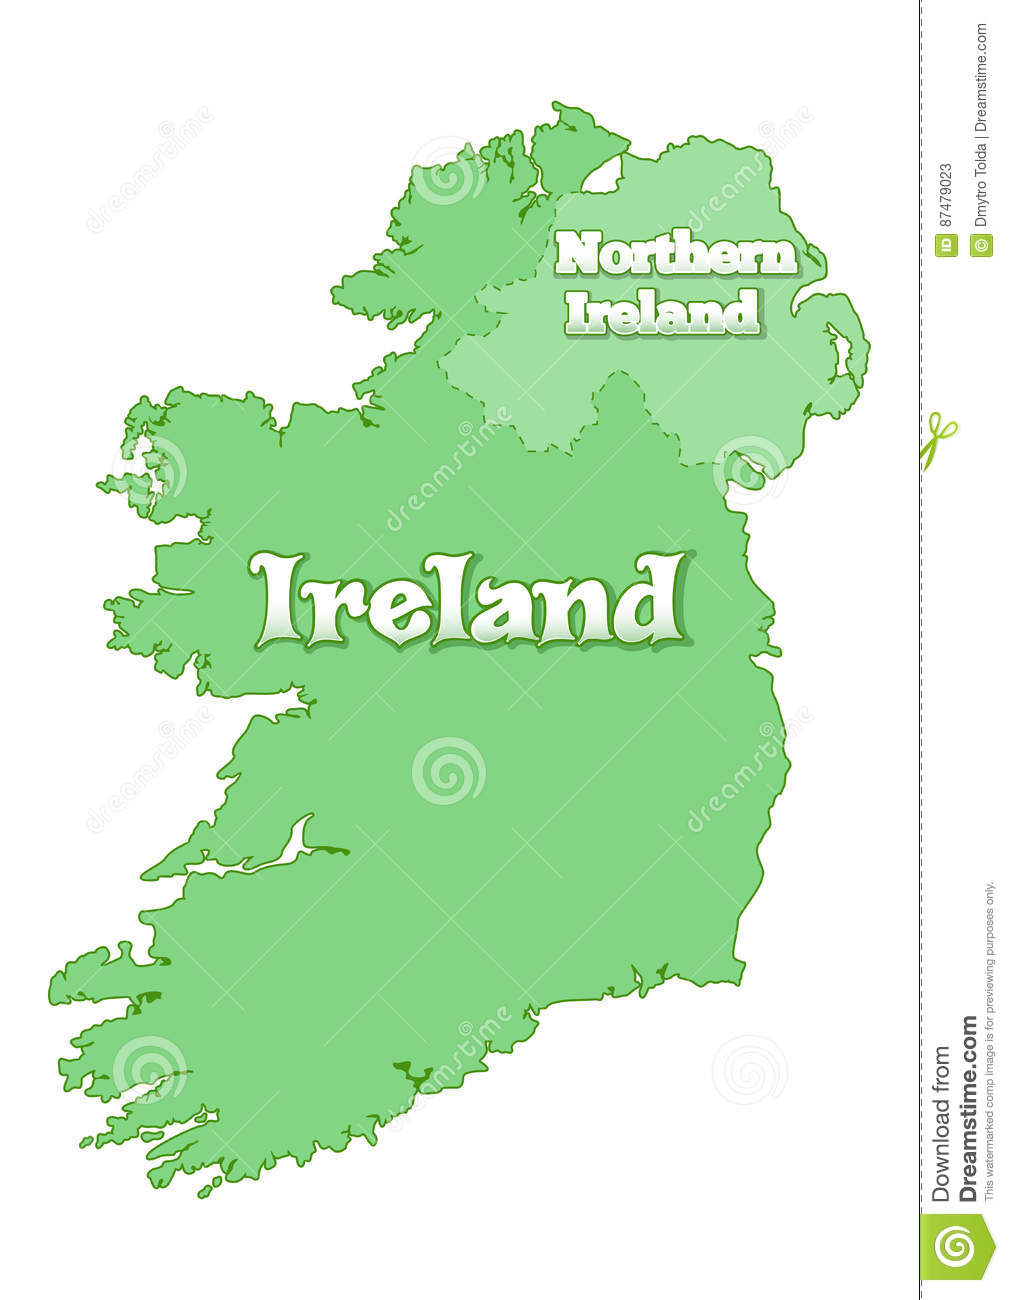 map republic ireland      Free Wallpaper for MAPS   Full Maps Free Maps of Ireland Dail Eireann Constituencies Map showing the Da l  Eireann electoral constituencies in the Republic of Ireland as of the  election kB Map